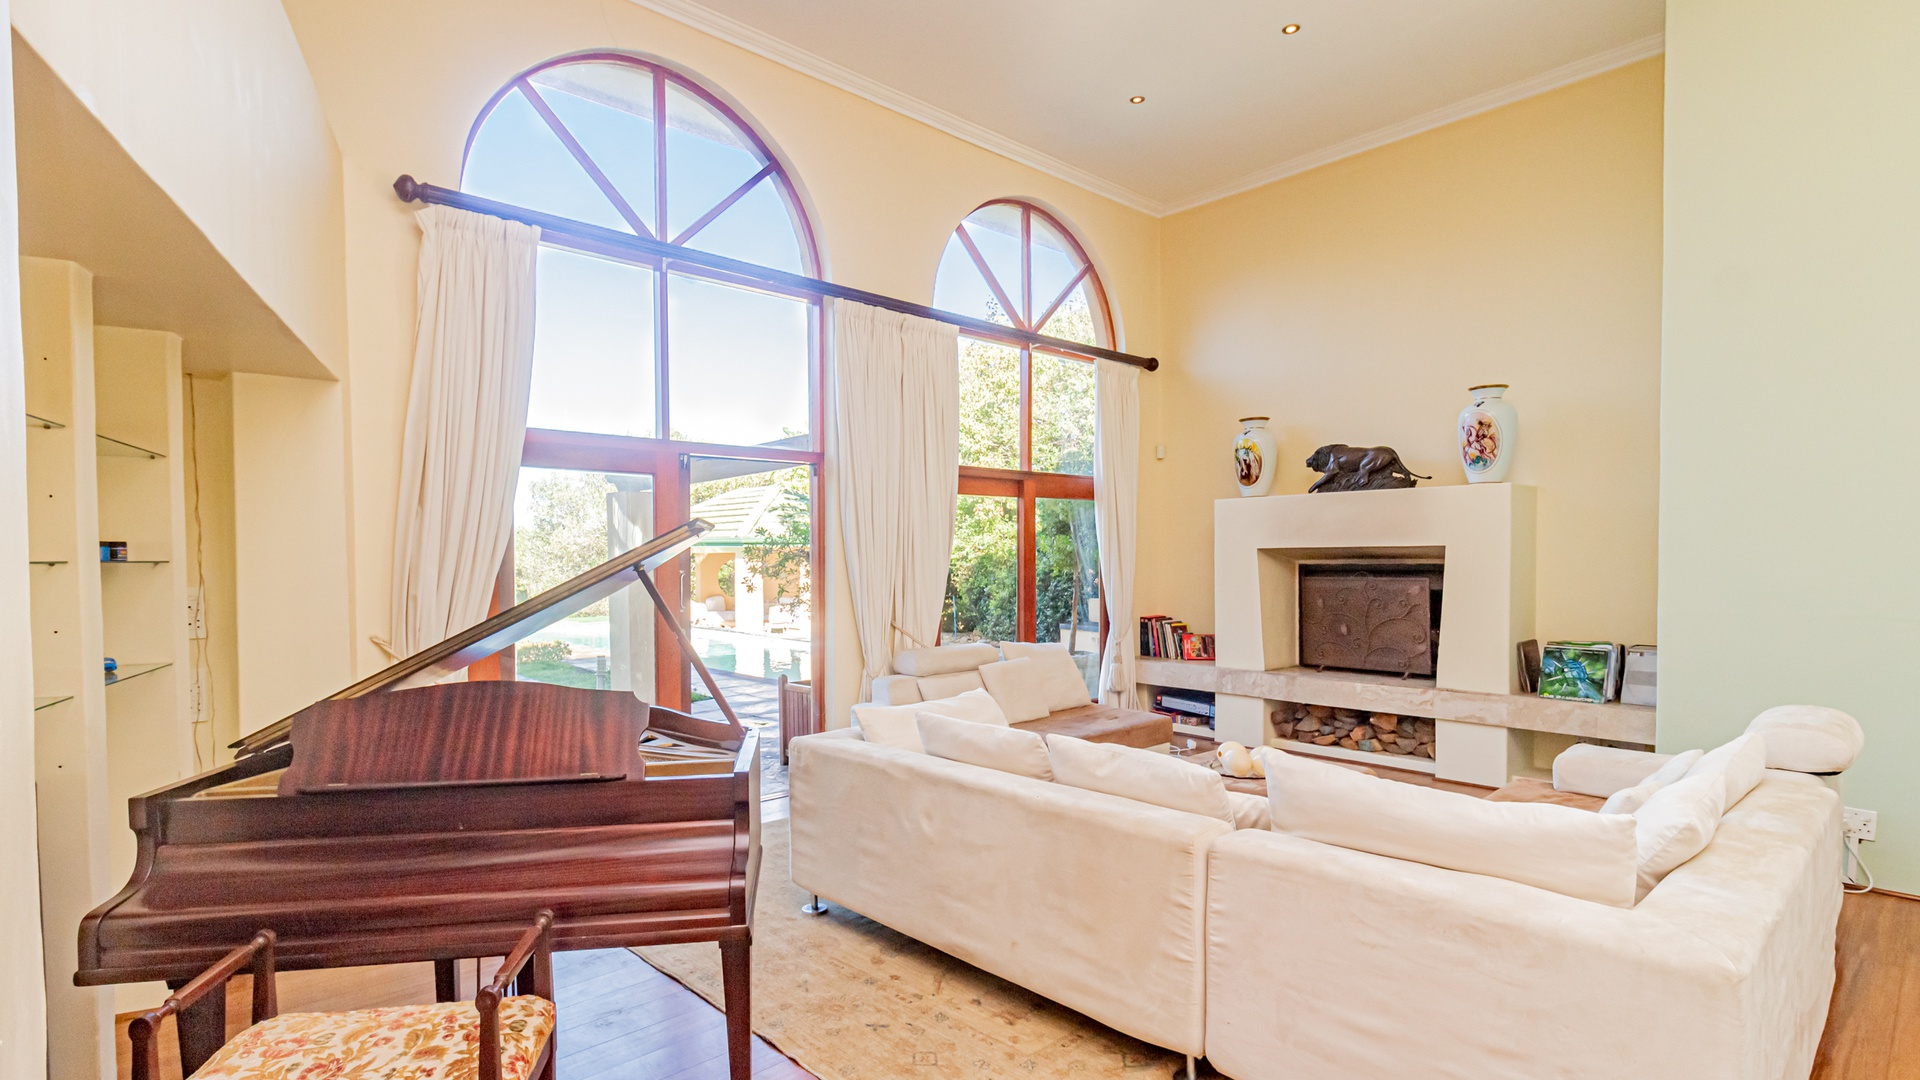 House in Hout Bay - Lounge area